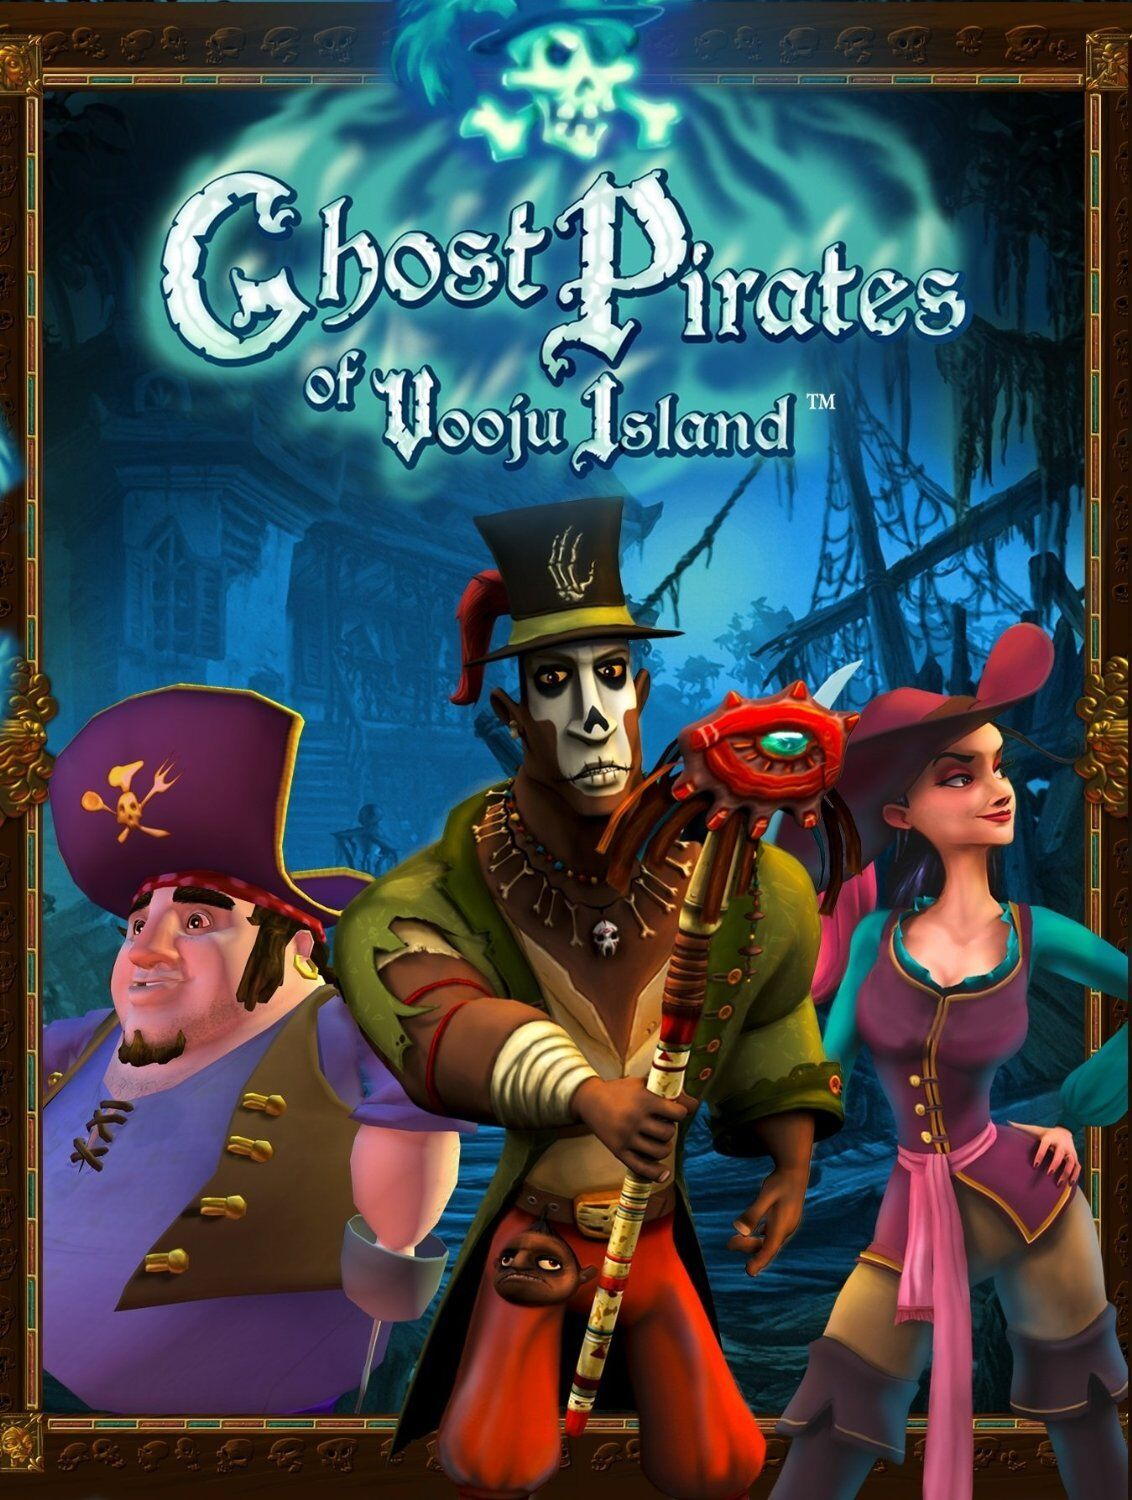 Ghost Pirates Of Vooju Island PC Games Window 10 8 7 XP Computer point and click